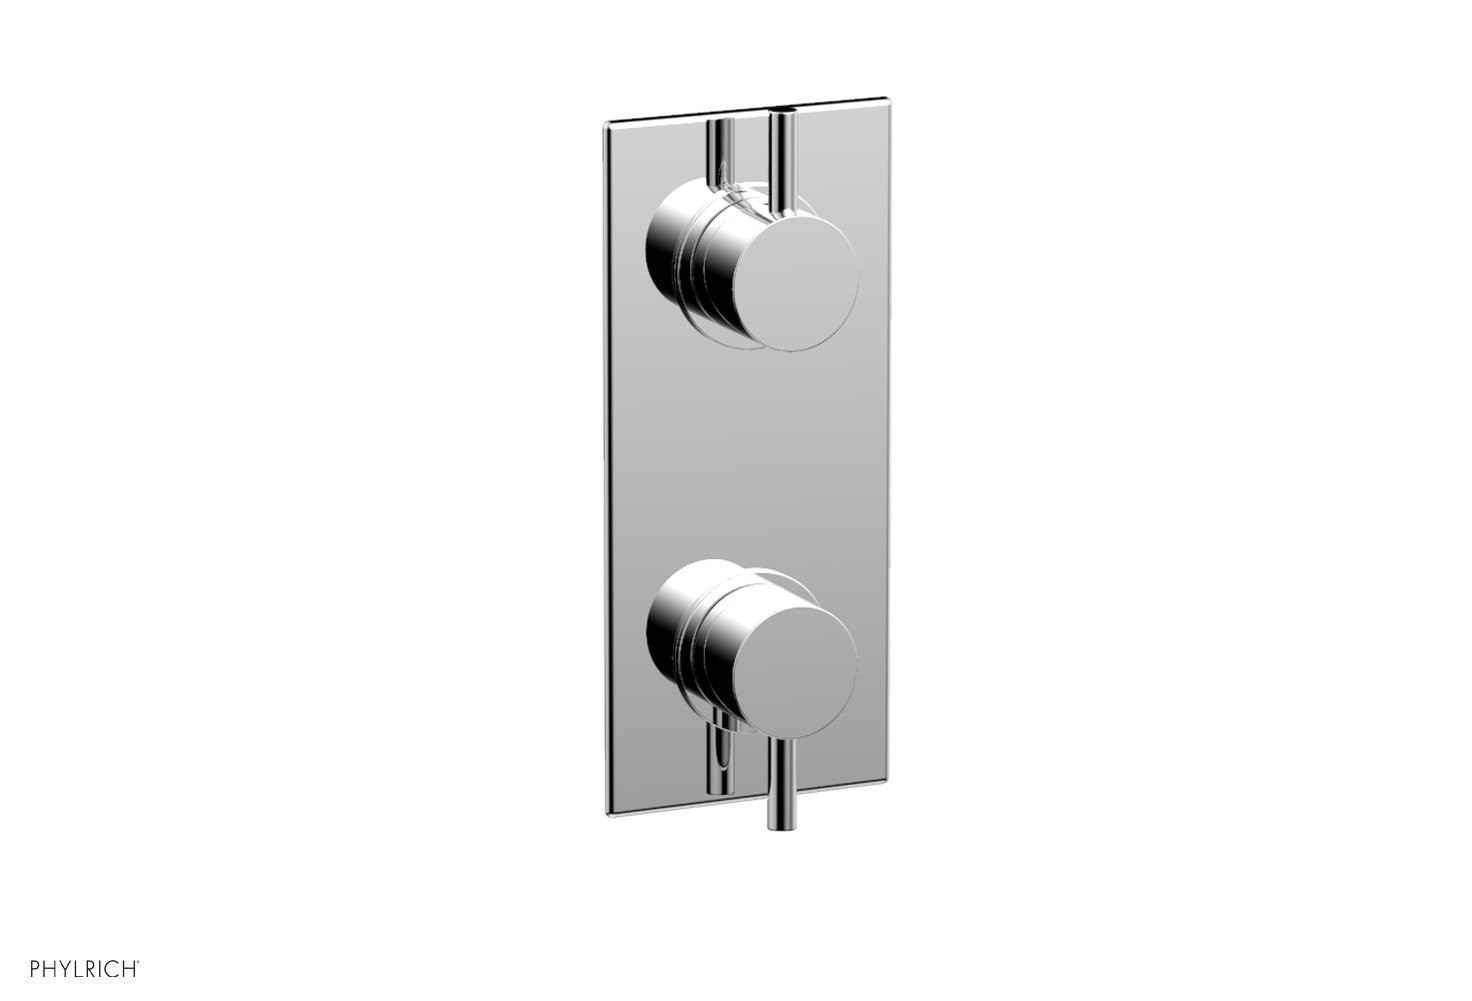 PHYLRICH 4-171 BASIC II WALL MOUNT TWO LEVER HANDLES MINI THERMOSTATIC VALVE WITH VOLUME CONTROL OR DIVERTER TRIM